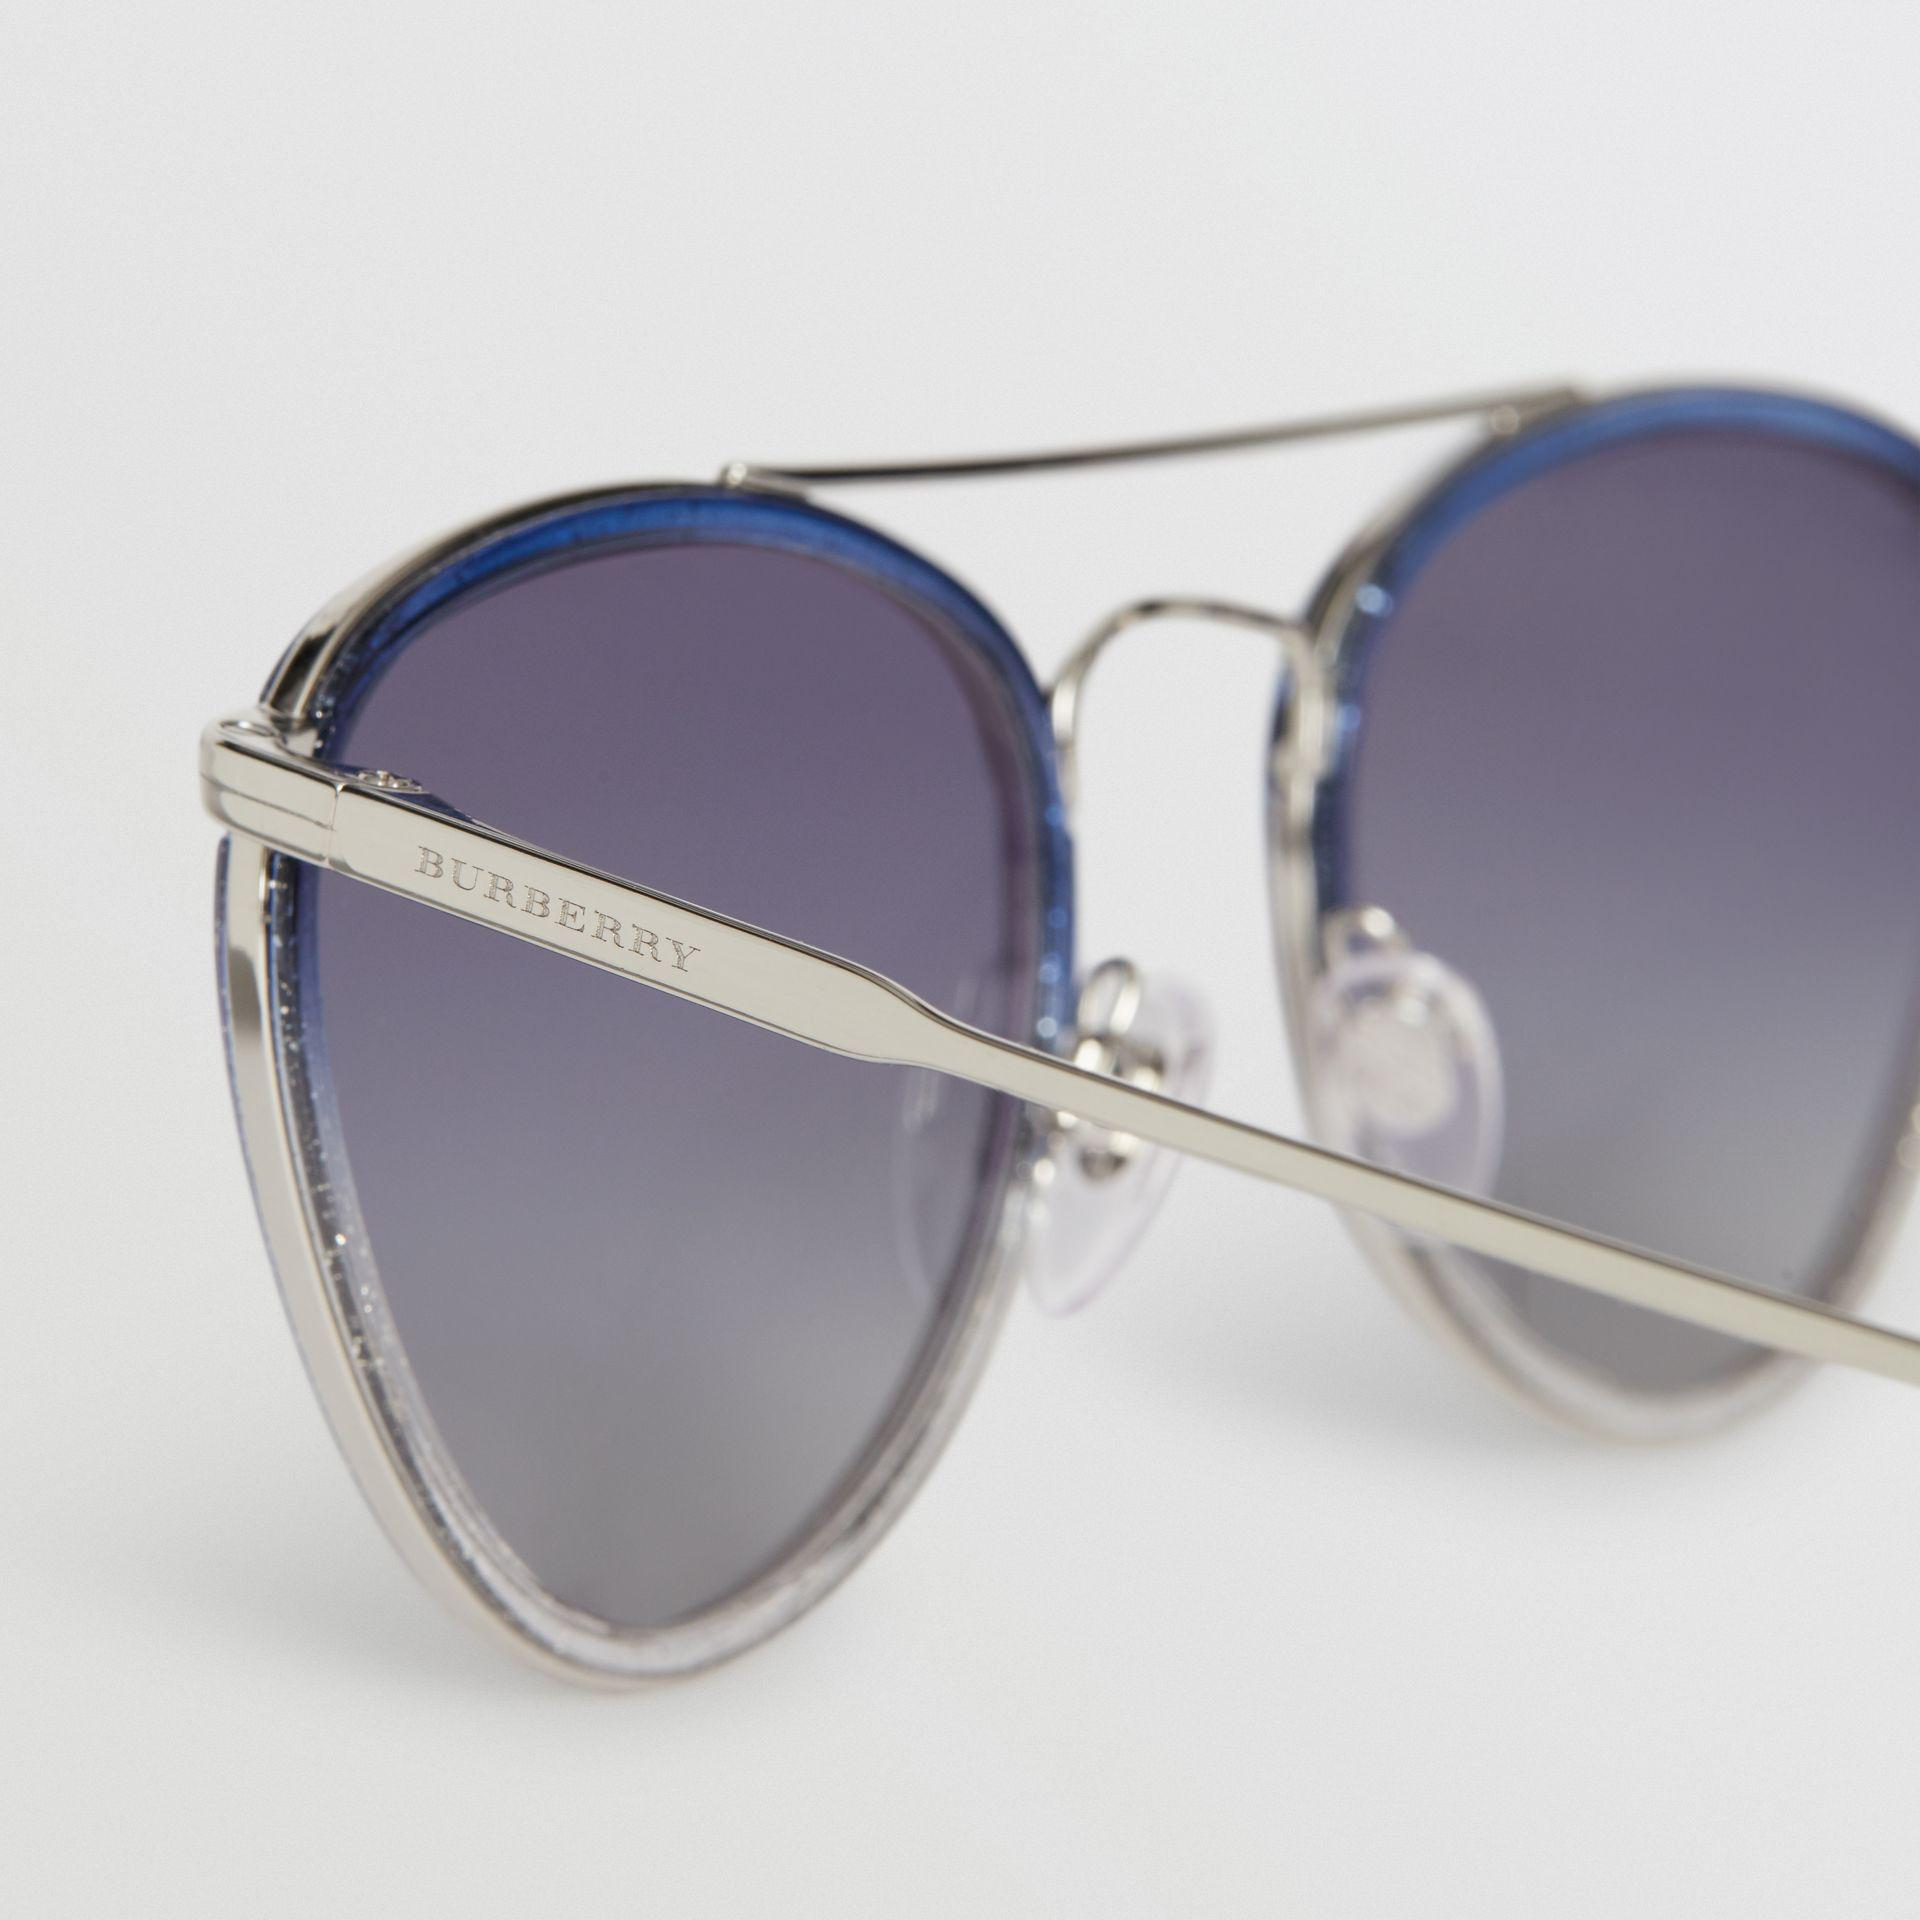 4d614f3ae21c63 Burberry - Blue Glitter Detail Pilot Sunglasses - Lyst. View fullscreen